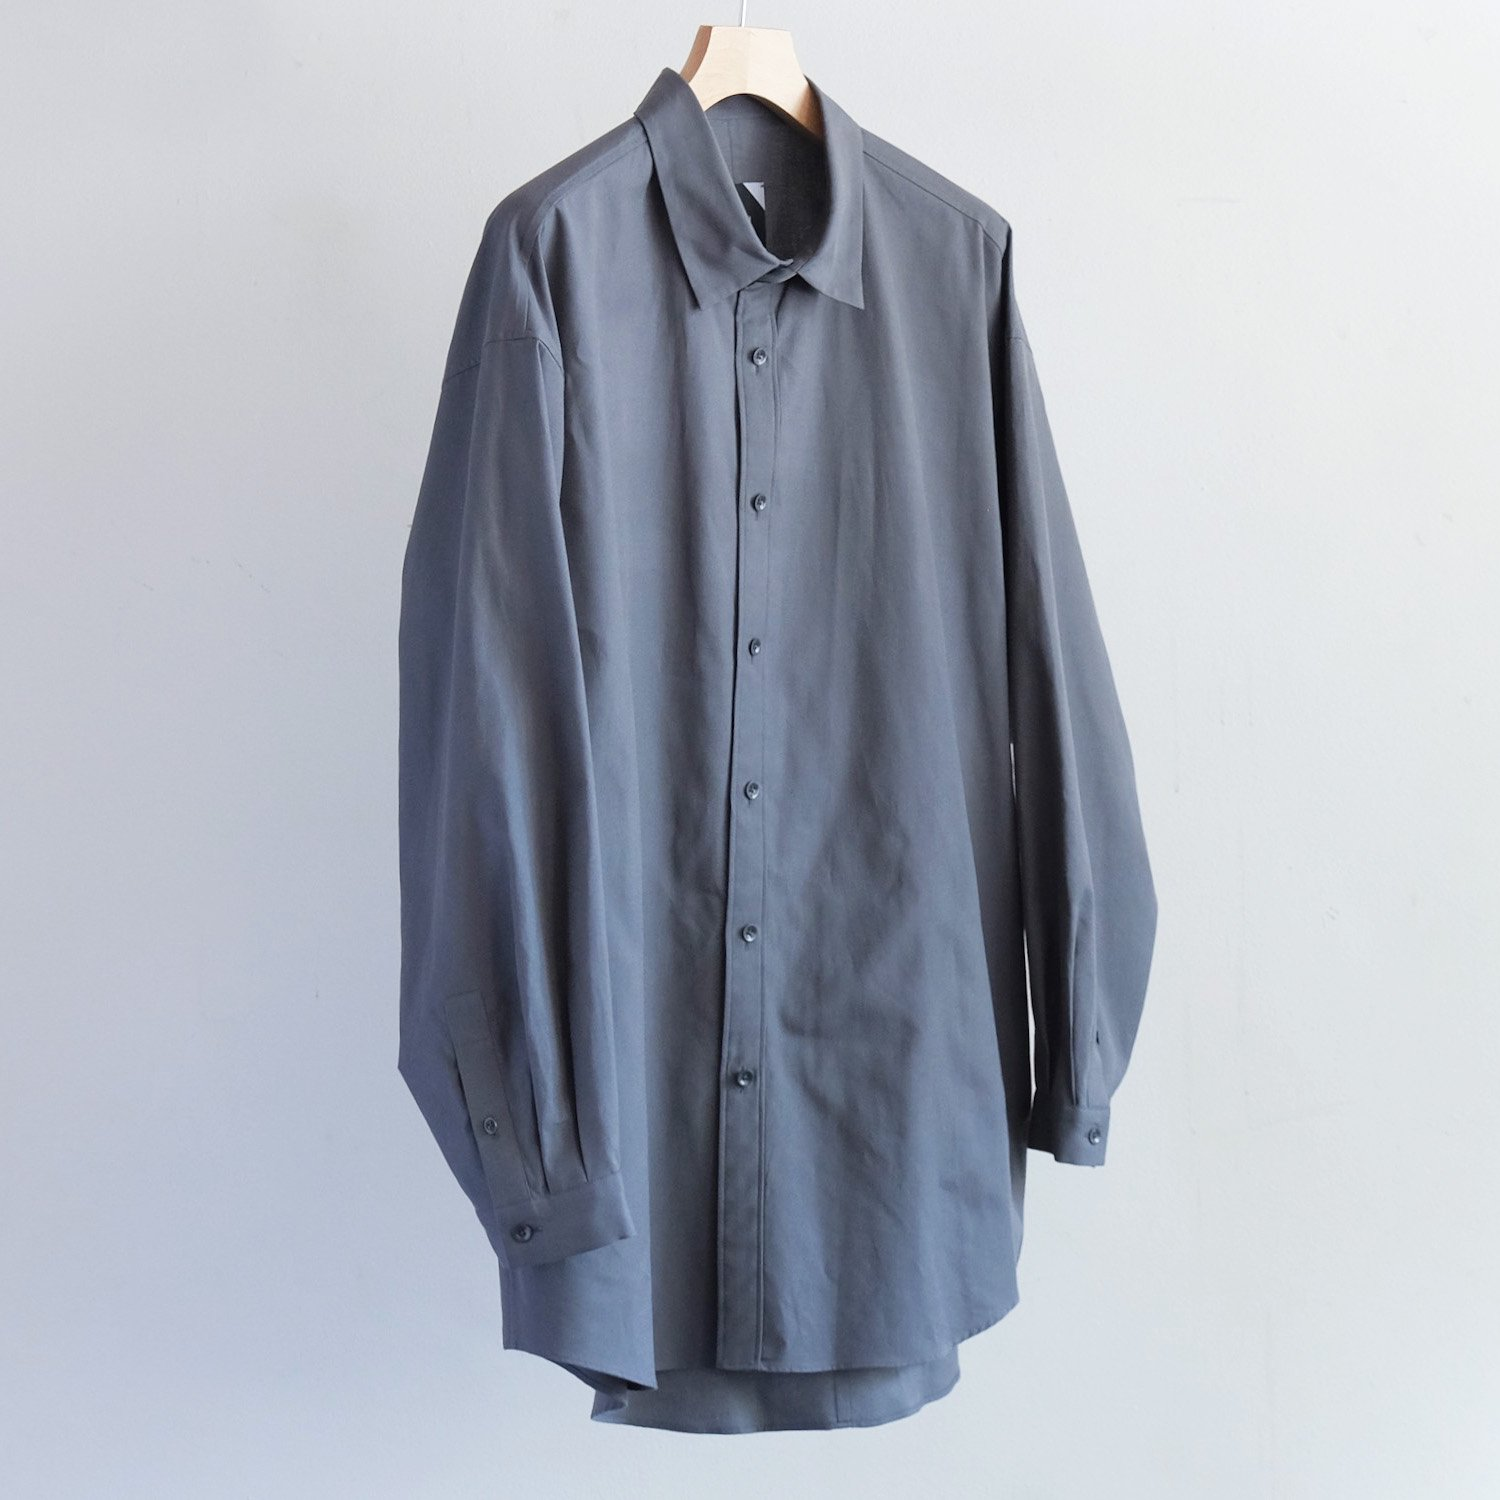 COTTON CASHMERE OXFORD OVERSIZED LONG SHIRT [CHARCOAL GRAY]